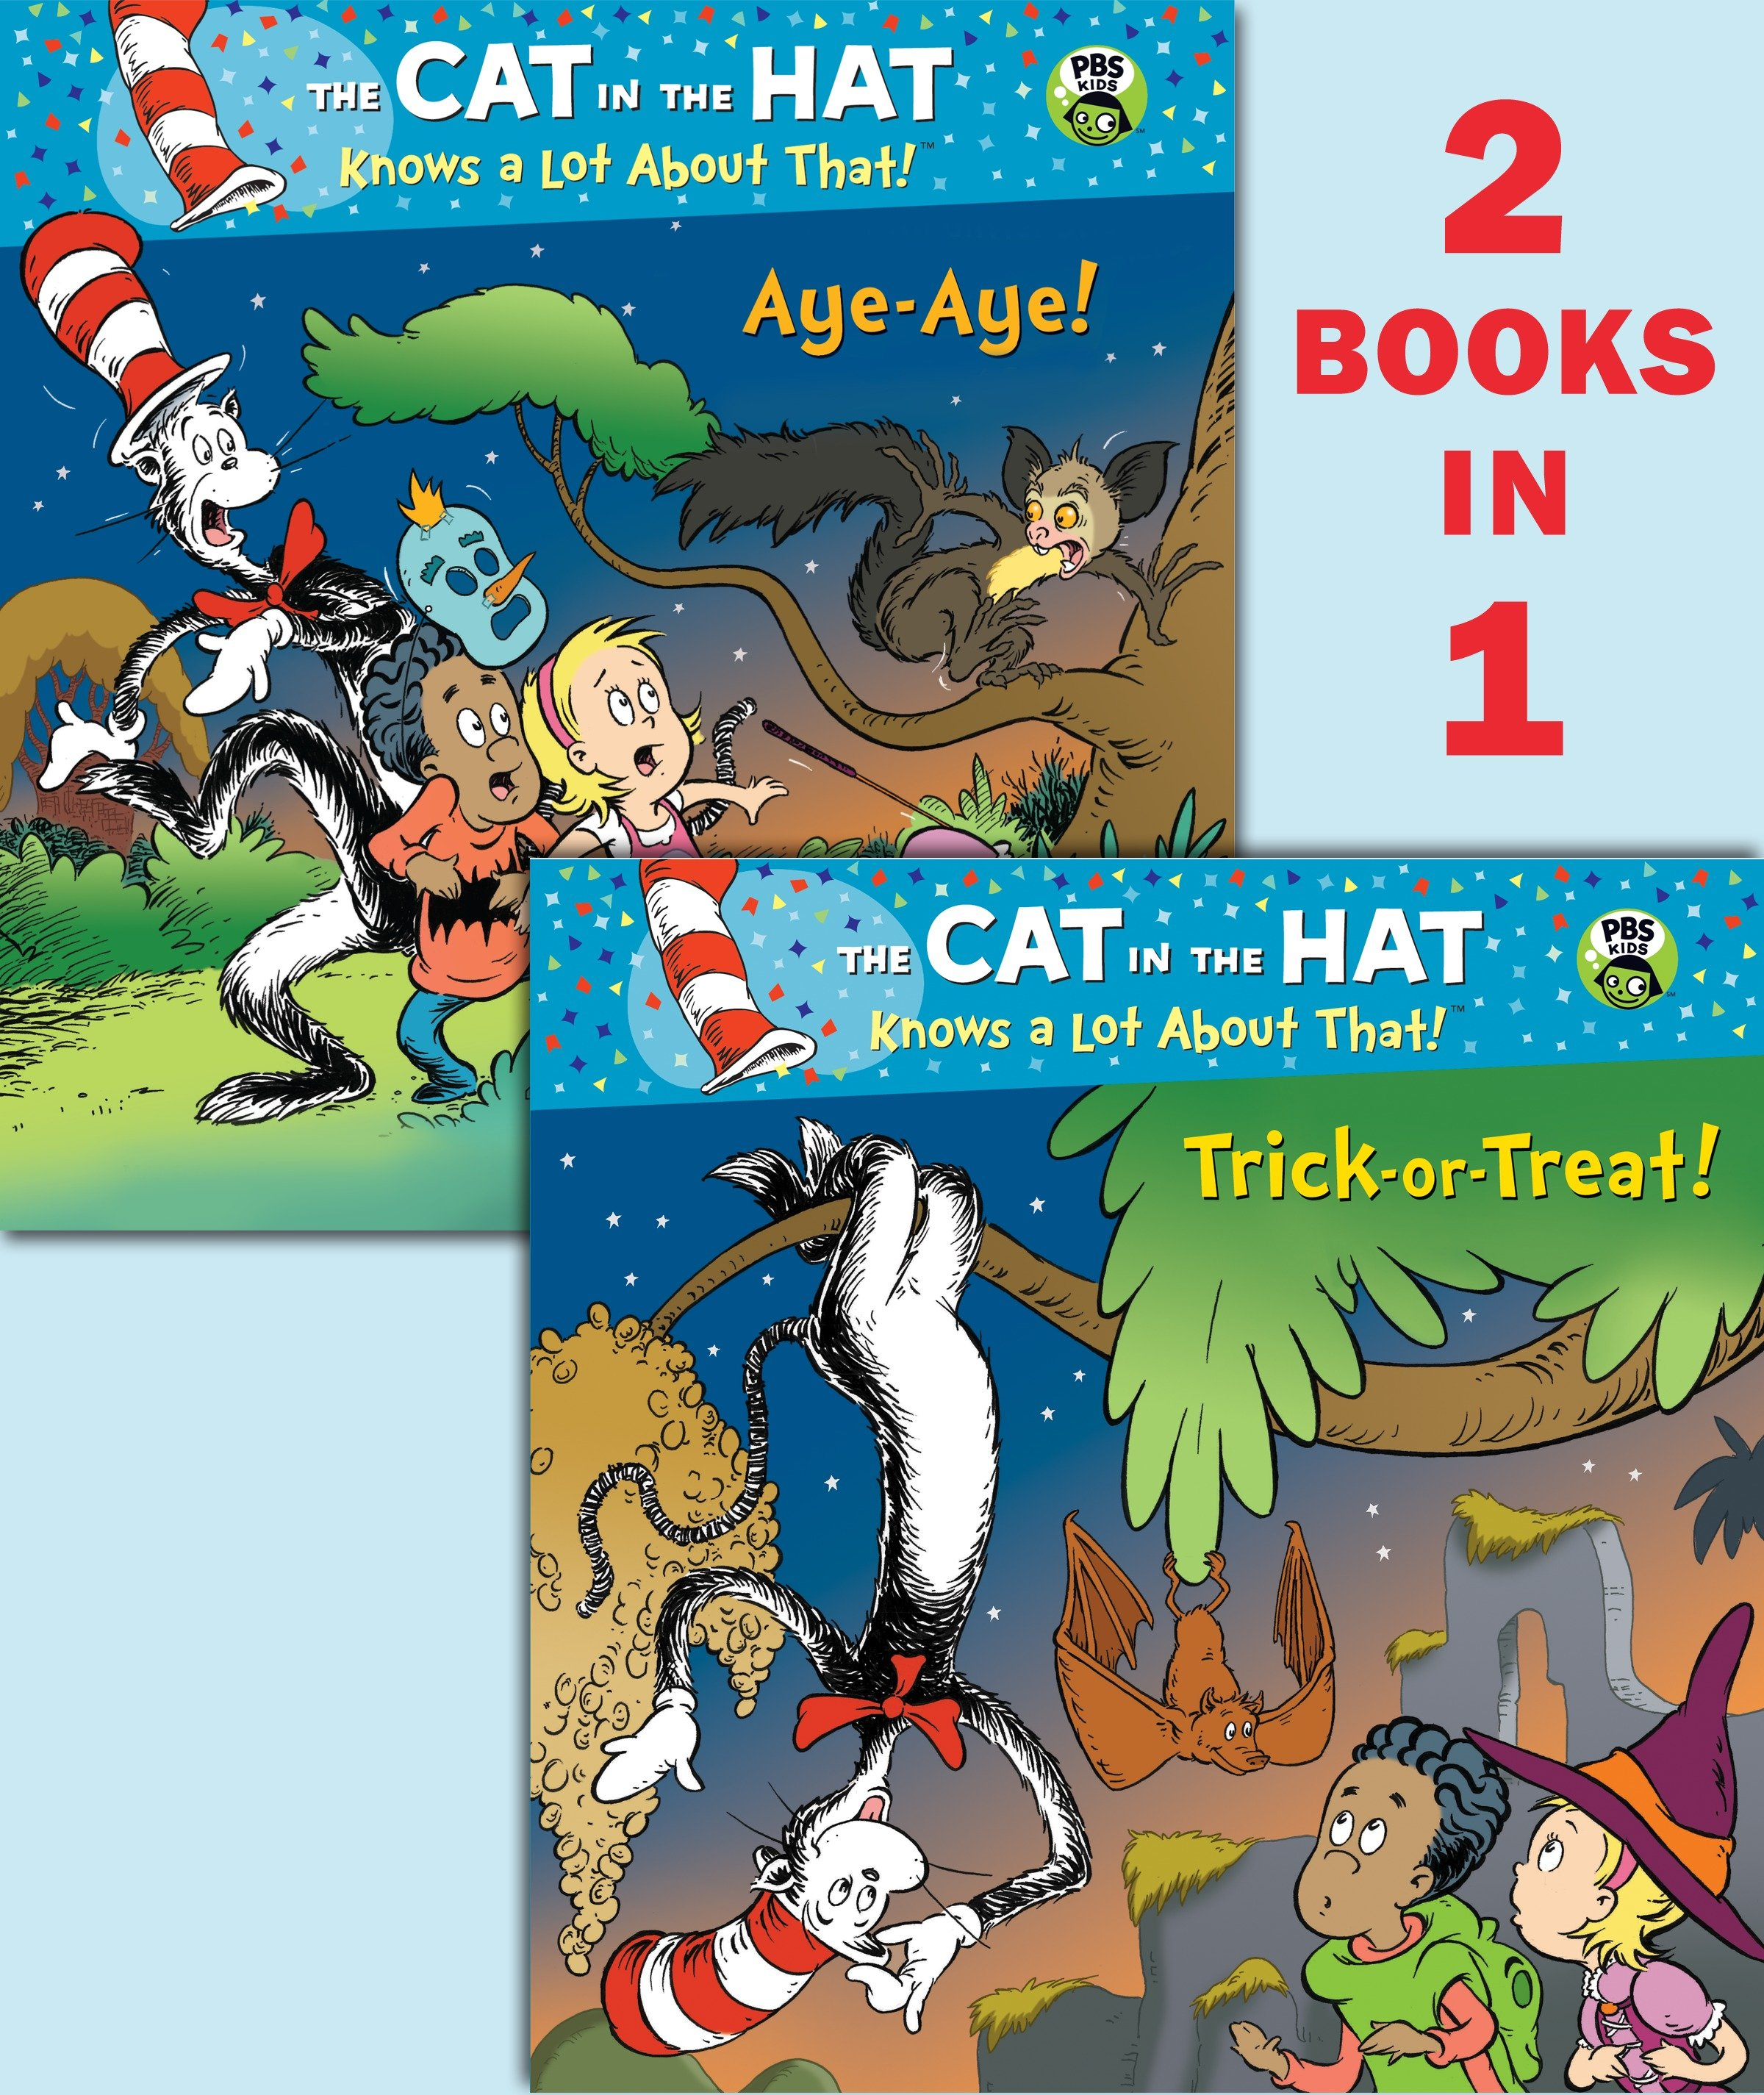 Trick-or-Treat!/Aye-Aye! (Dr. Seuss/Cat in the Hat) cover image